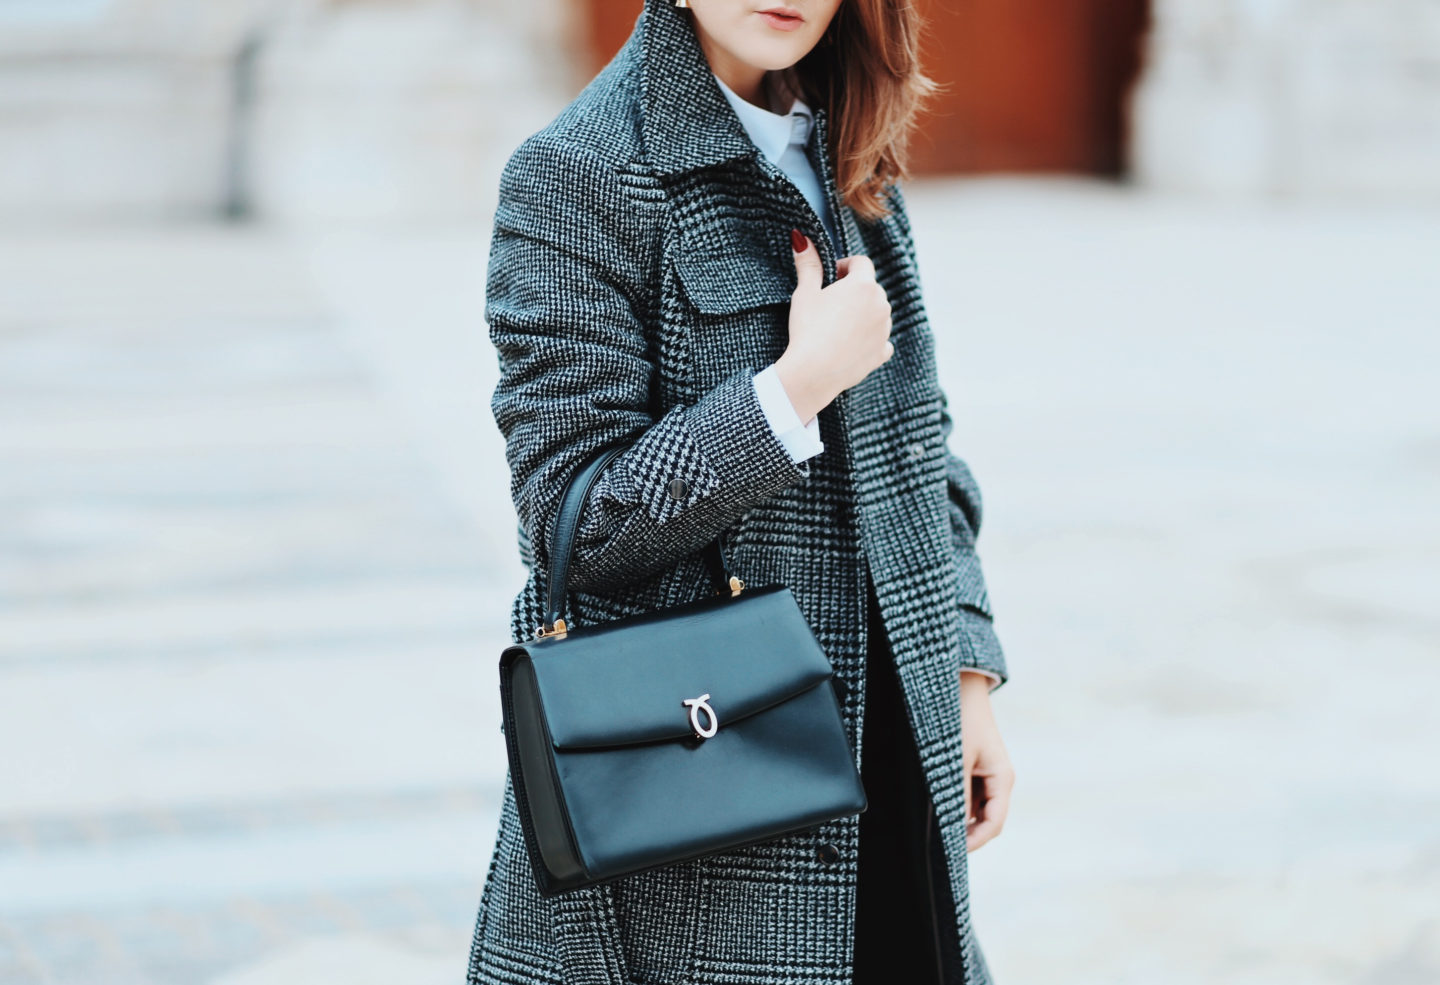 How to dress for work in Autumn